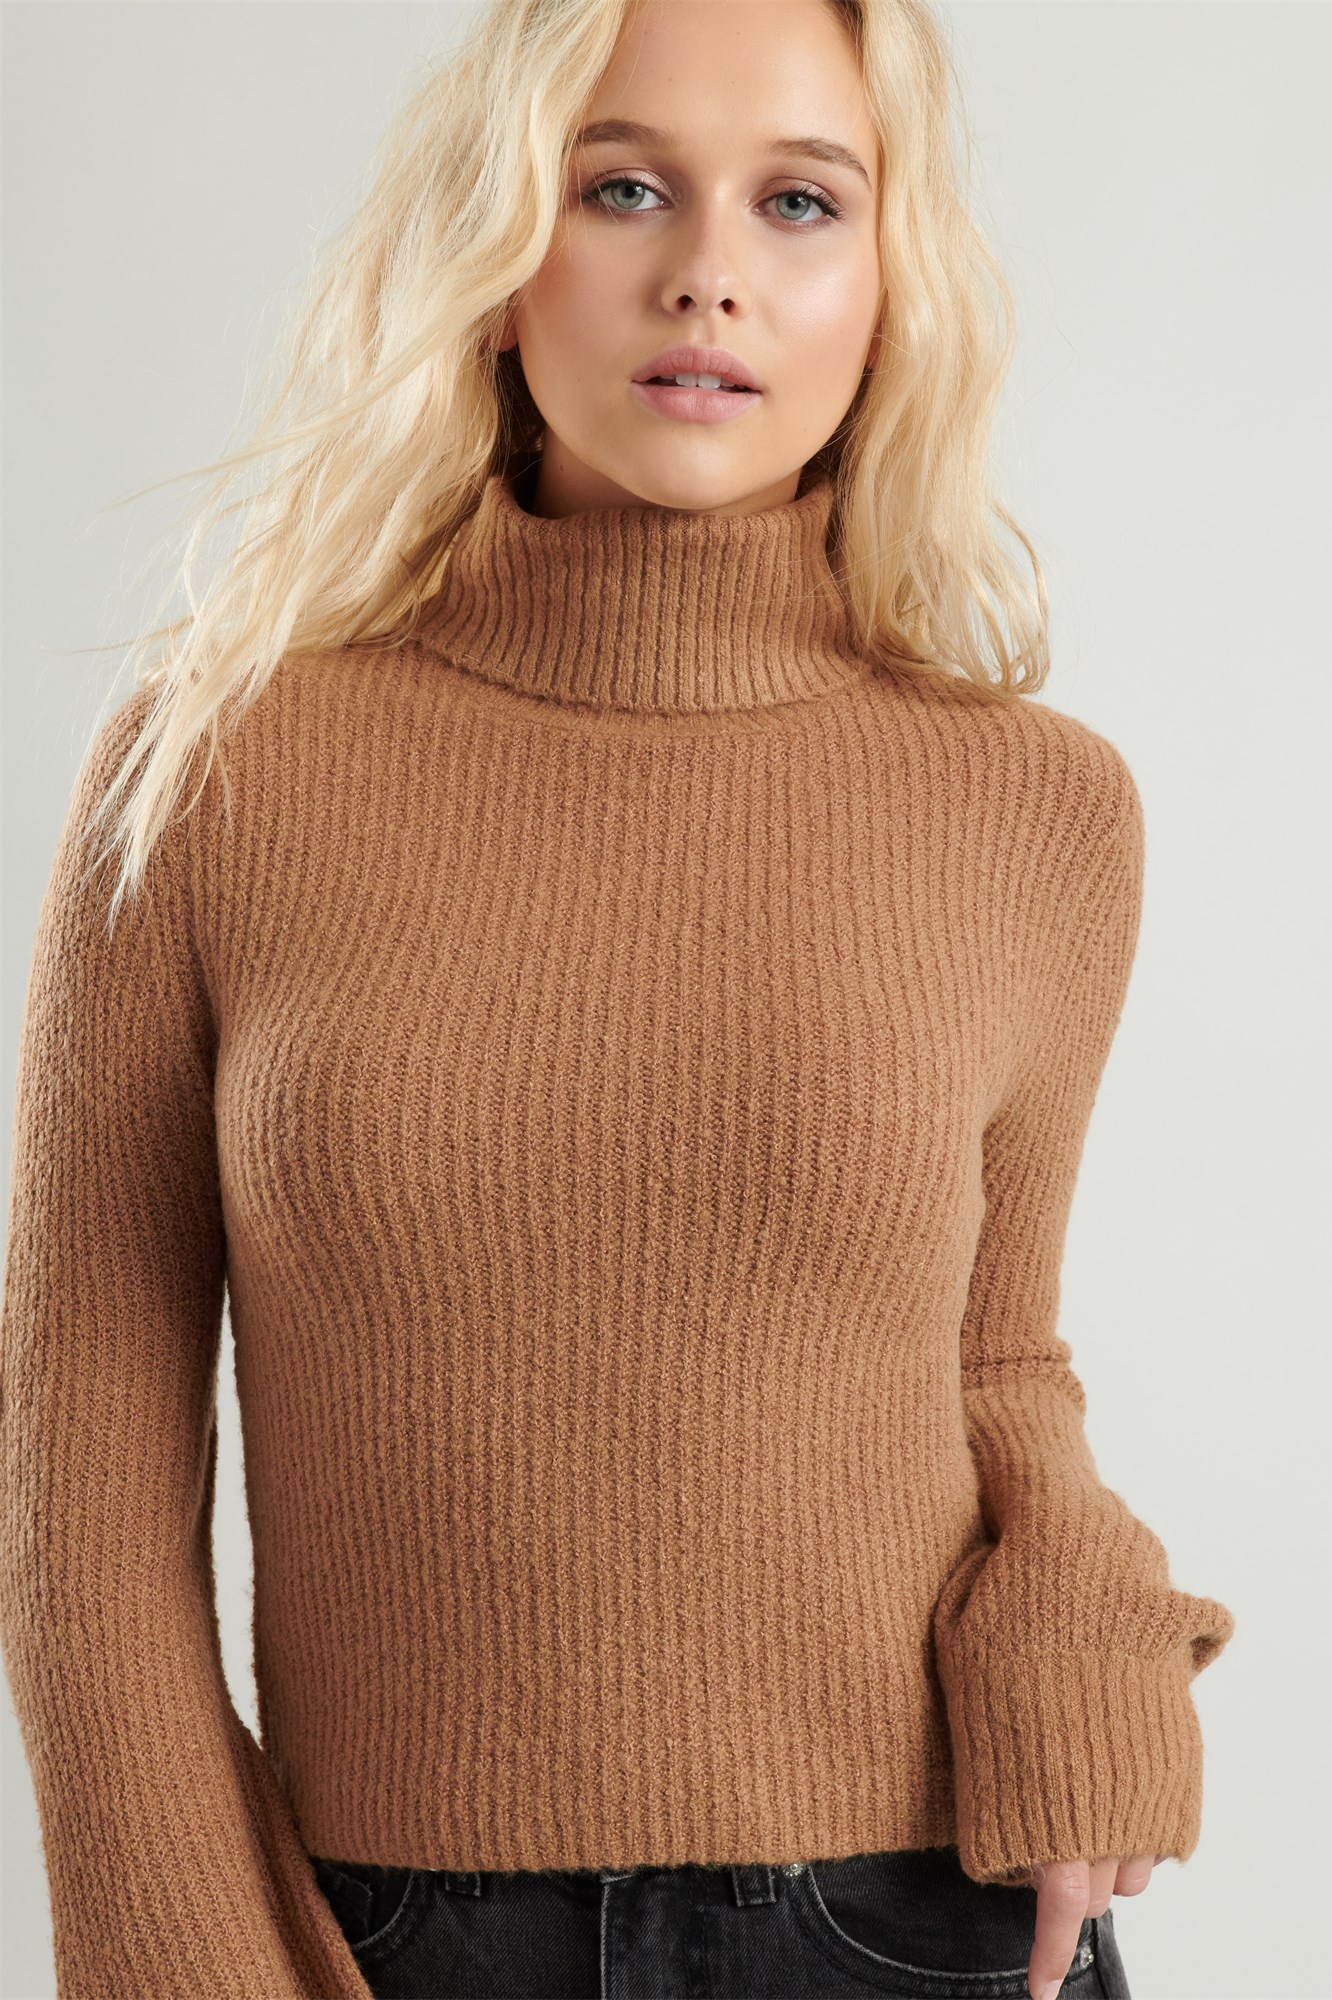 Image 2 of The Audrey Sweater